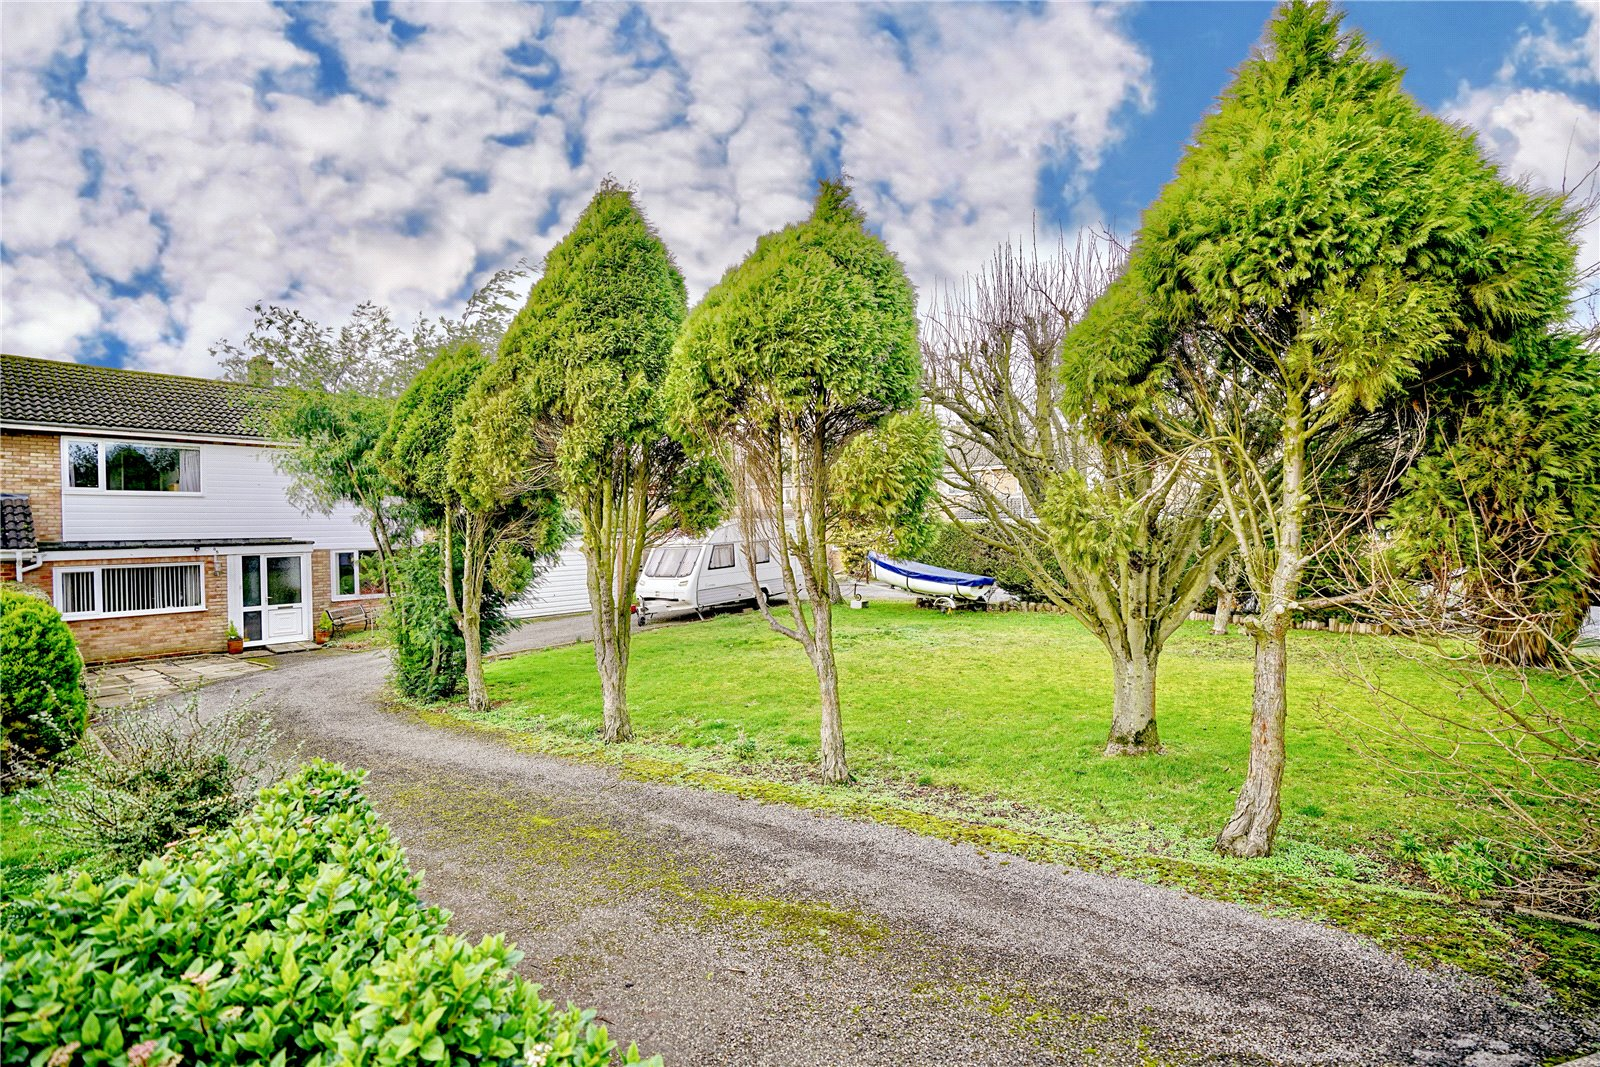 3 bed house for sale in Green Acres, Gamlingay  - Property Image 1